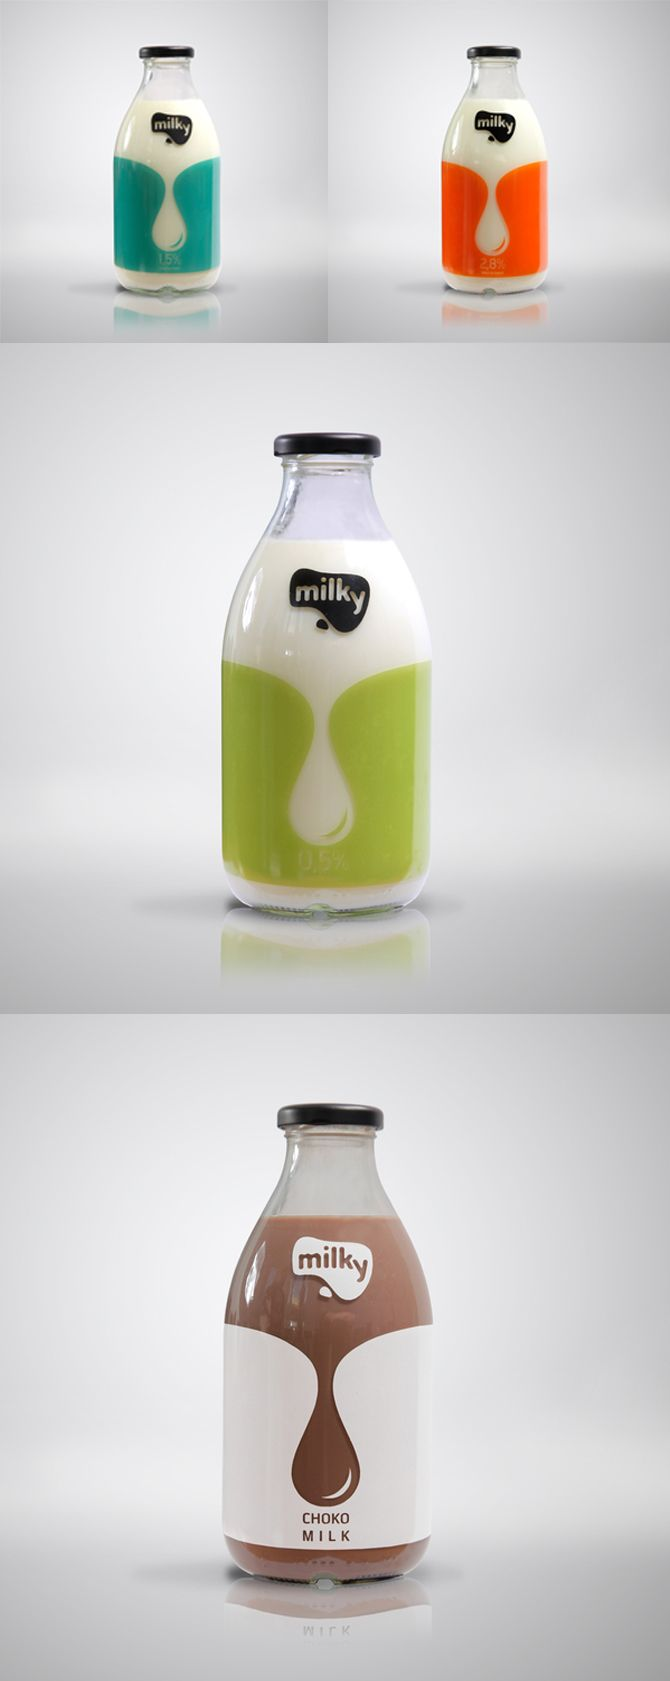 Milk Packaging Designs For Inspiration - We Design Packaging | jebiga | #design #packaging #water #ideas #creative #jebiga